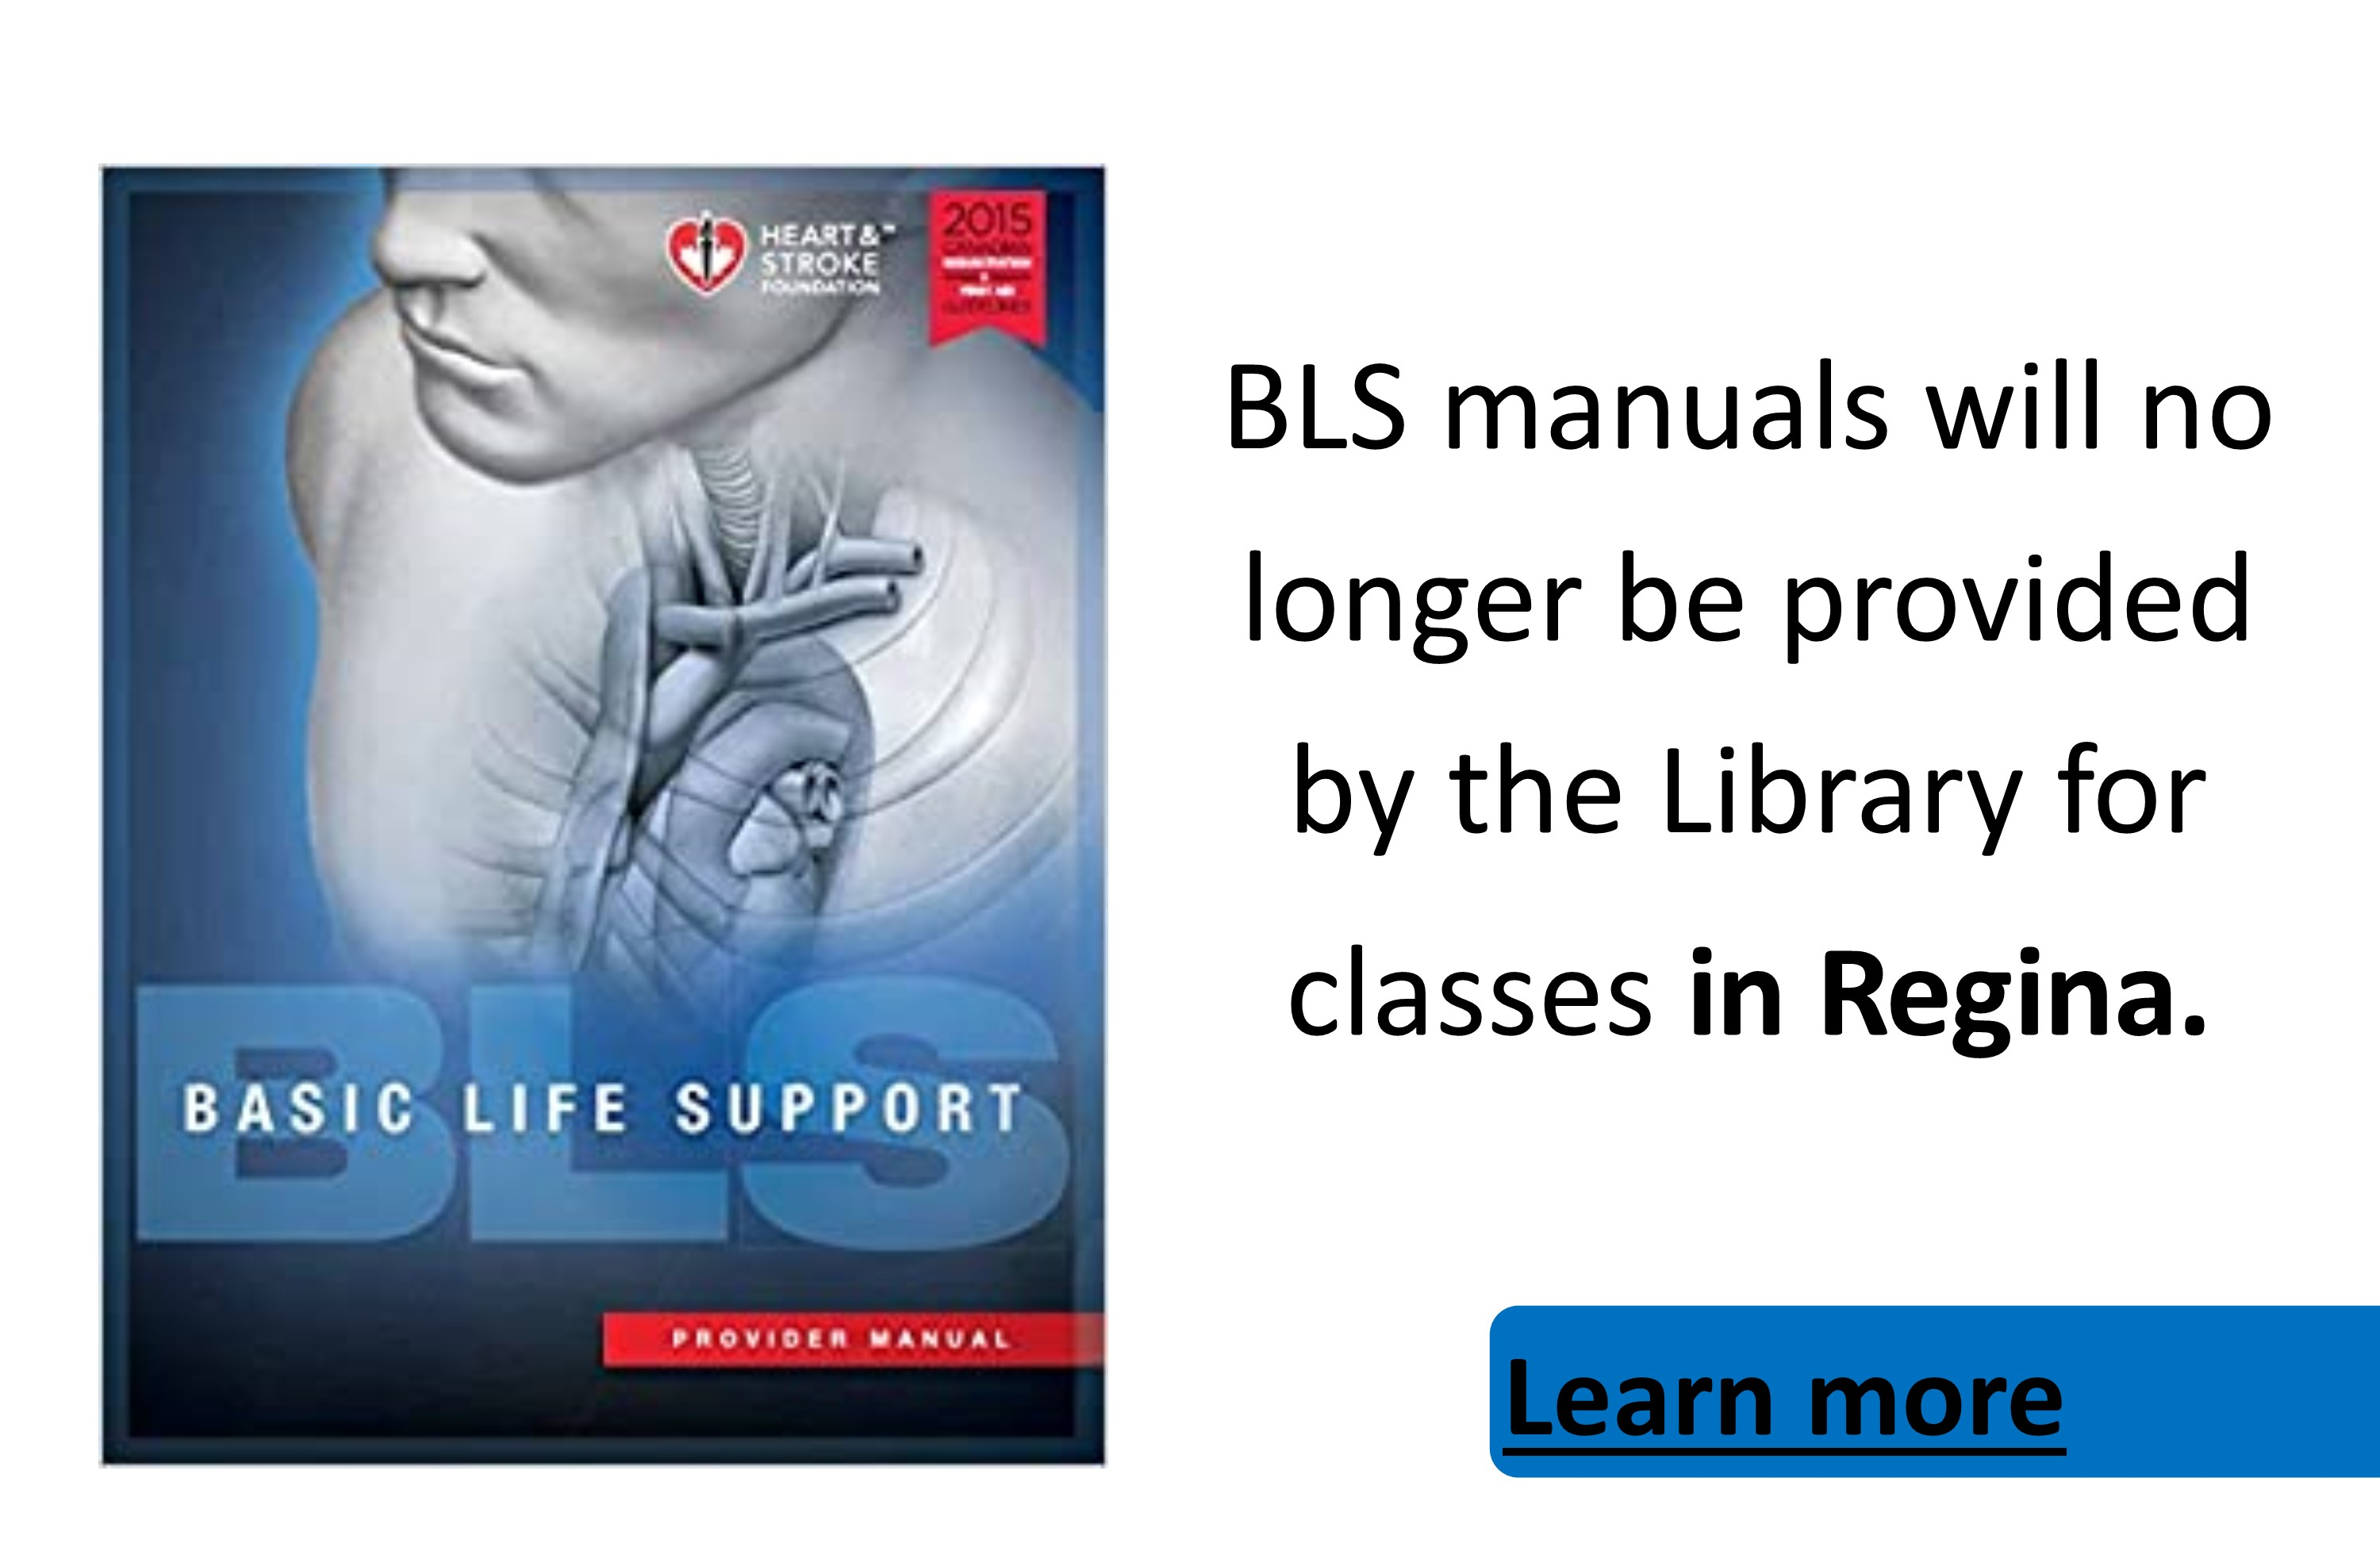 BLS manuals no longer loaned out by the Library in Regina